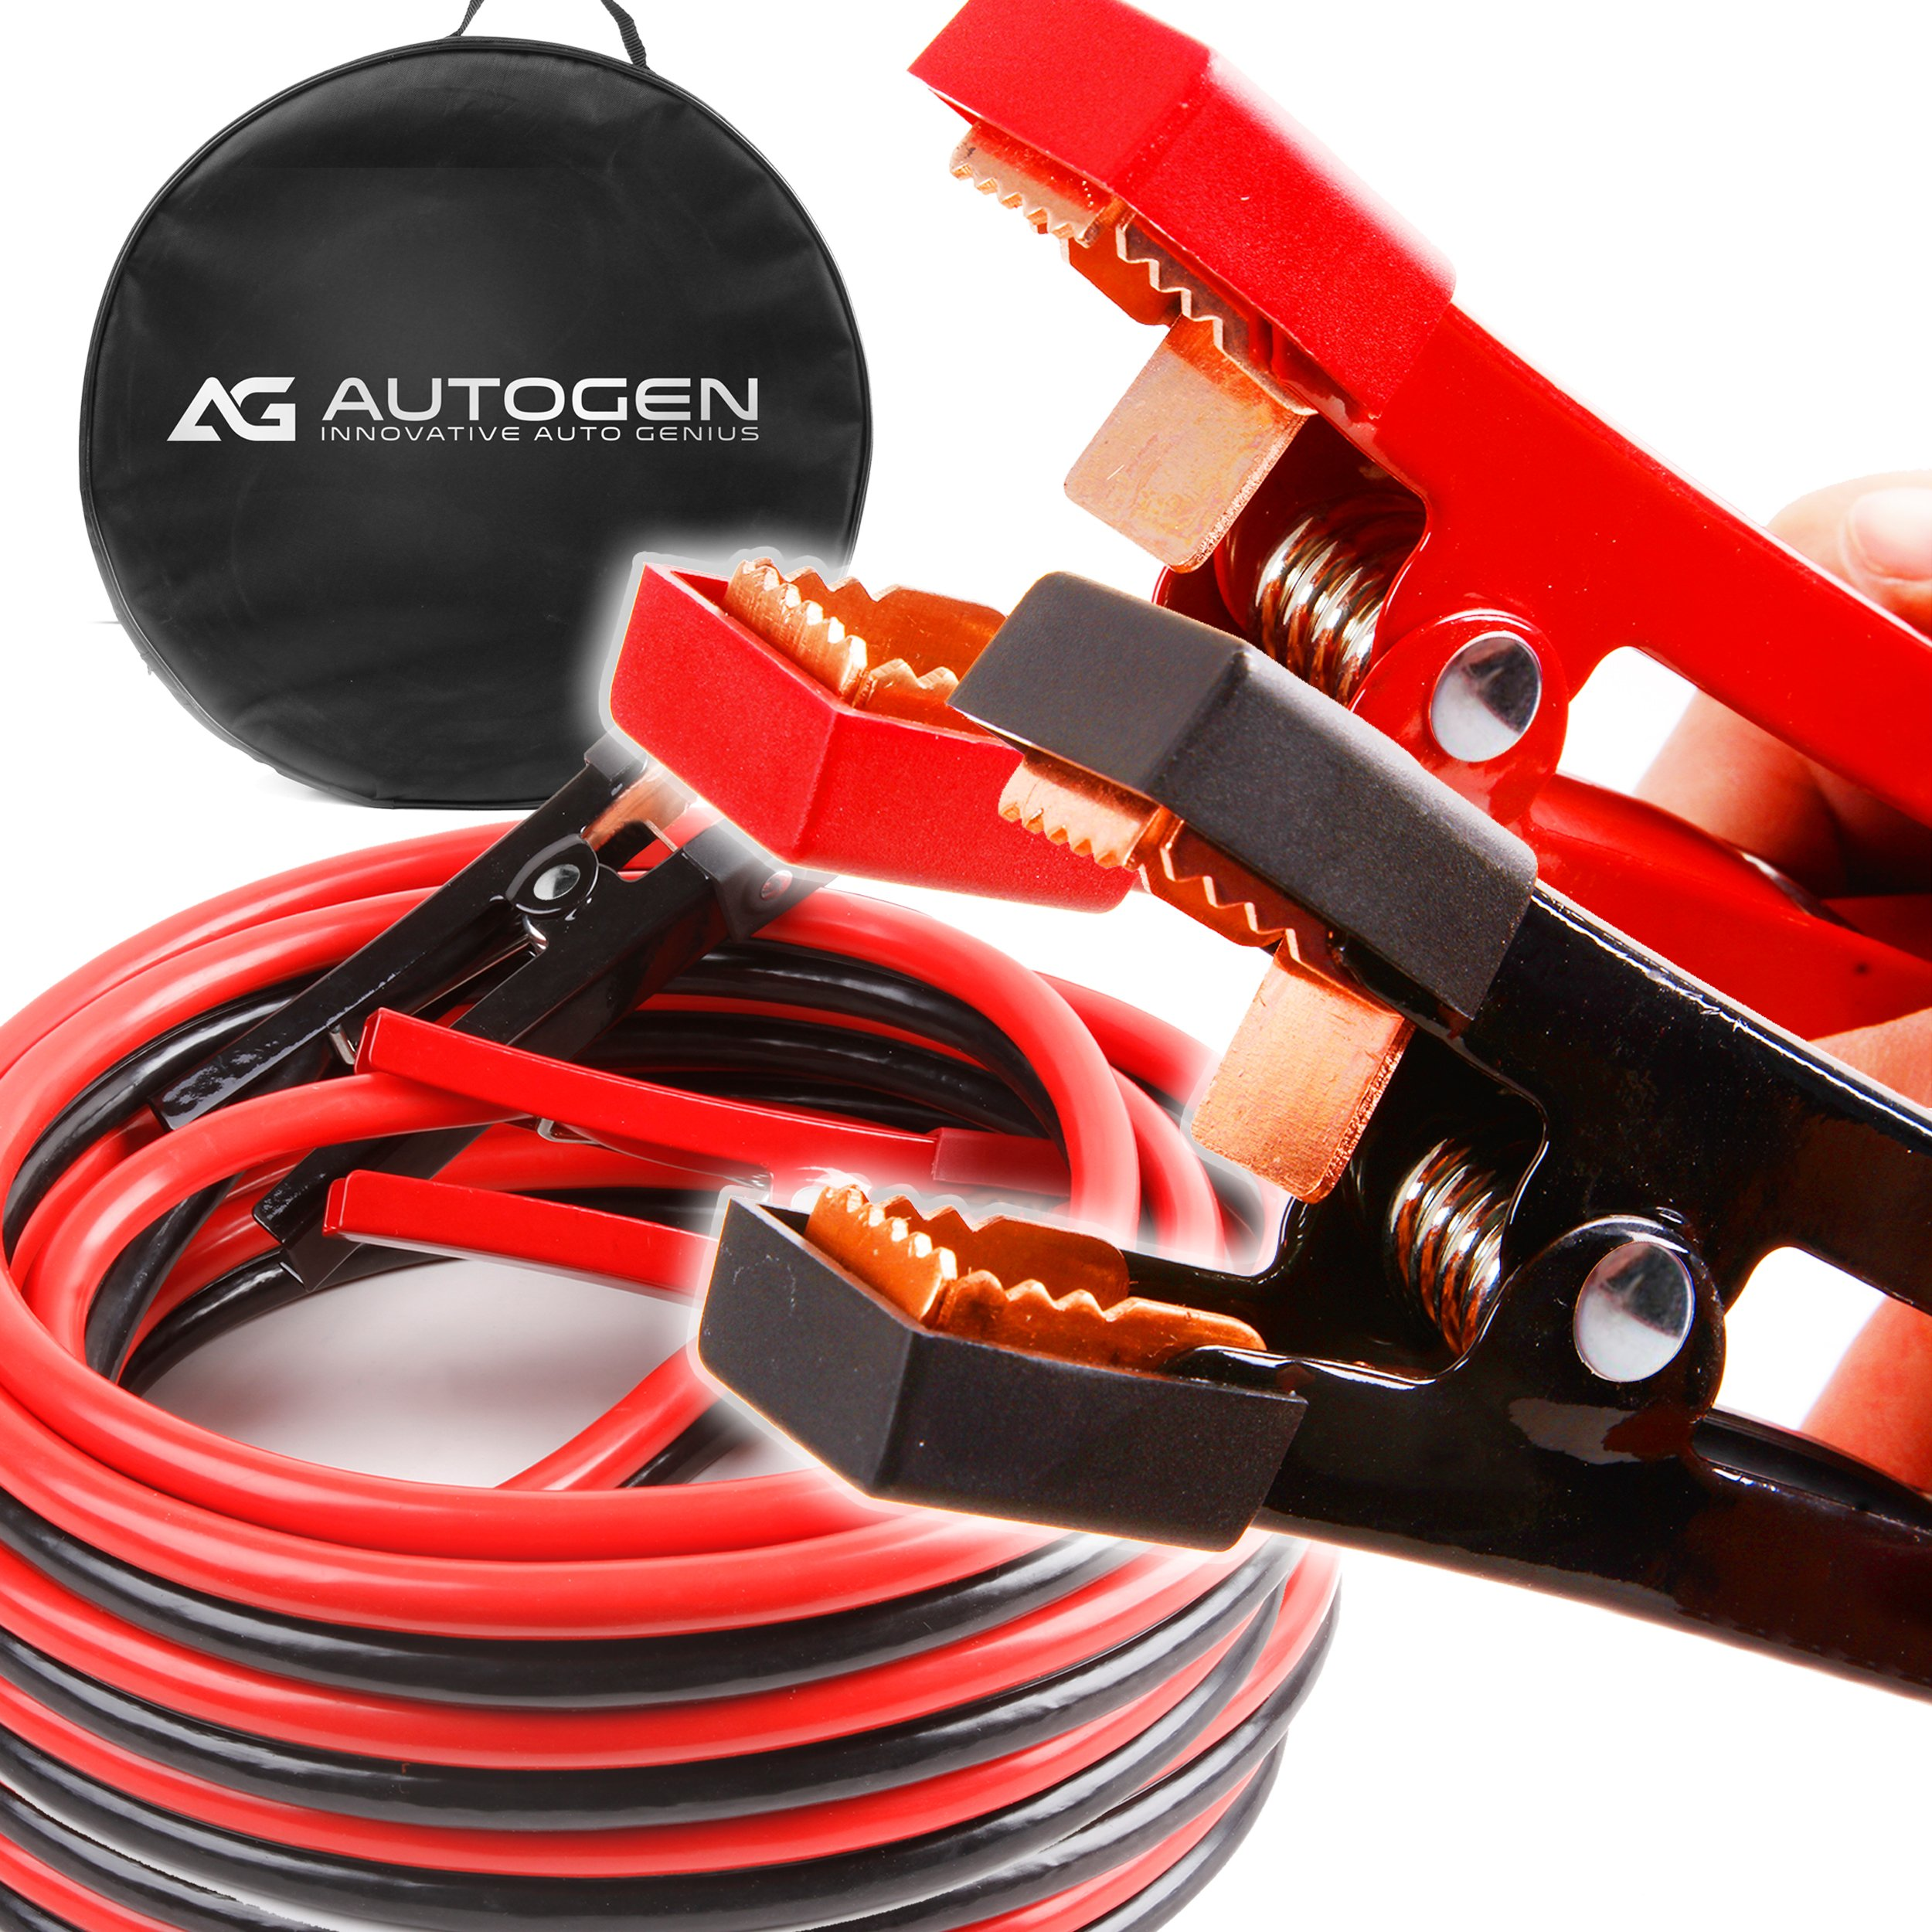 AUTOGEN Jumper Cables 1 Gauge 30 Ft 900A Booster Cables with 100% Copper Jaws Jump Start Heavy Duty Trucks by AUTOGEN